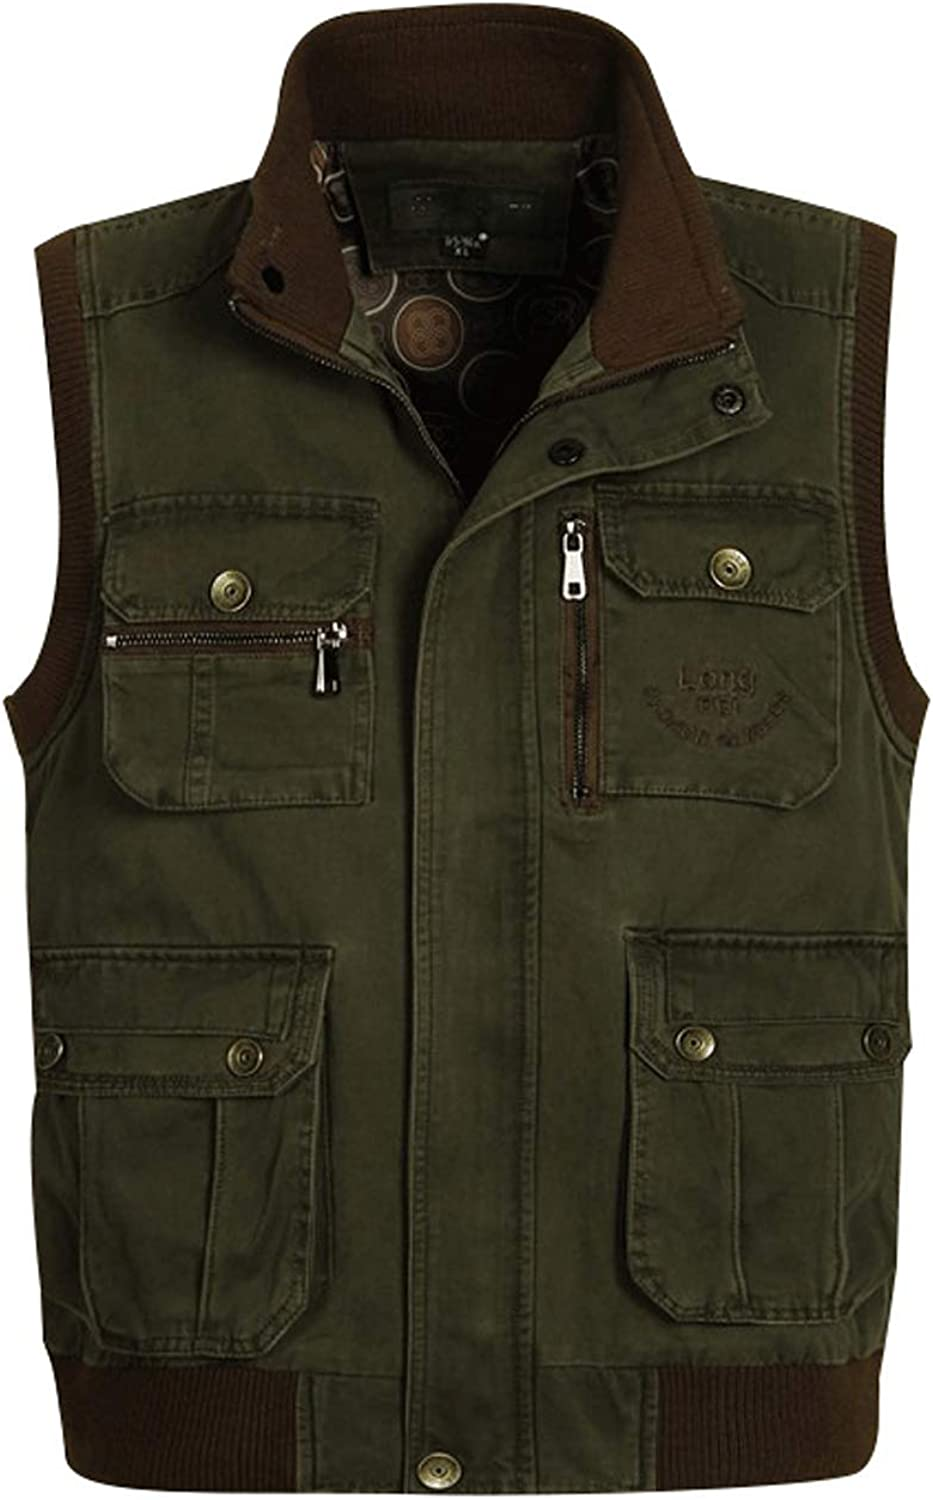 Zoulee Men's Outdoor Photographers Vest with Multi Pockets Fishing Vest